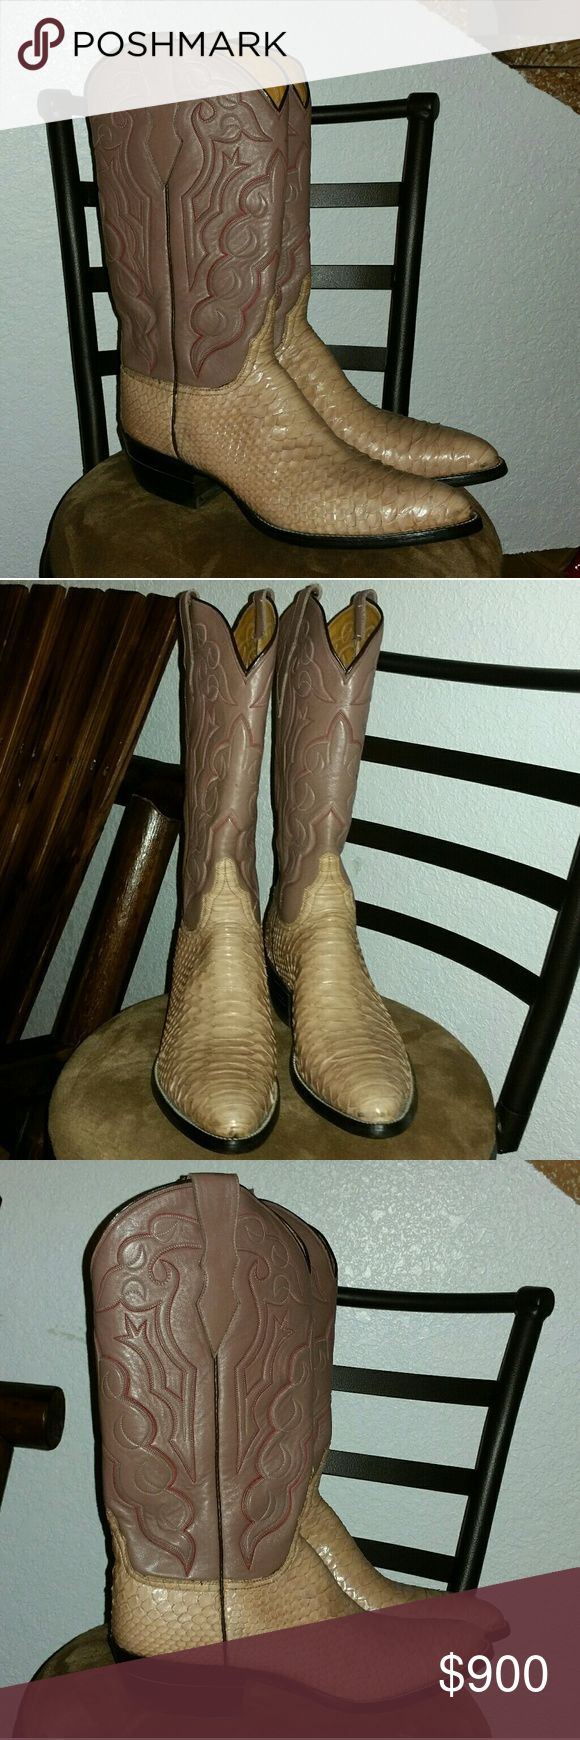 Men's Handmade Snakeskin Cowboy Boots Men's Snakeskin Cowboy Boots, Handmade in Mexico, Real Snakeskin, Real Leather,  Color Brown/Tan  Size Narrow 10  Brand new. Only tried on once, NWOT. VERY SWEET LOOKING BOOTS. PERFECT CONDITIONS. Have any questions before purchase, just ask and I'll try to answer!!! Shoes Cowboy & Western Boots